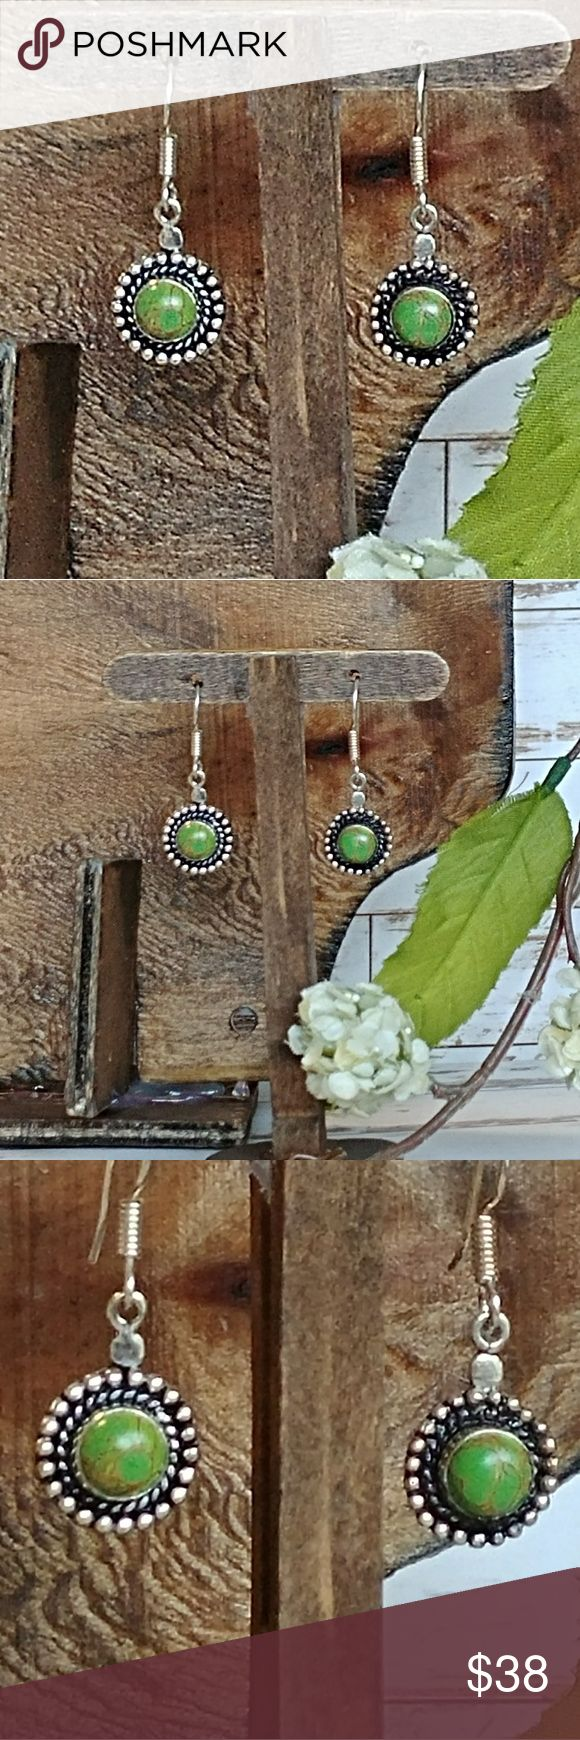 Green Copper Turquoise Antiqued Earrings Beautiful lime and apple greens mingle with flecks of gold in these unique Green Copper Turquoise stones. Set in solid sterling silver earring settings with black antiques accents. These are a great size for everyday wear at about 12mm diameter.  Jewelers retail: $286.00 Jewelry Earrings